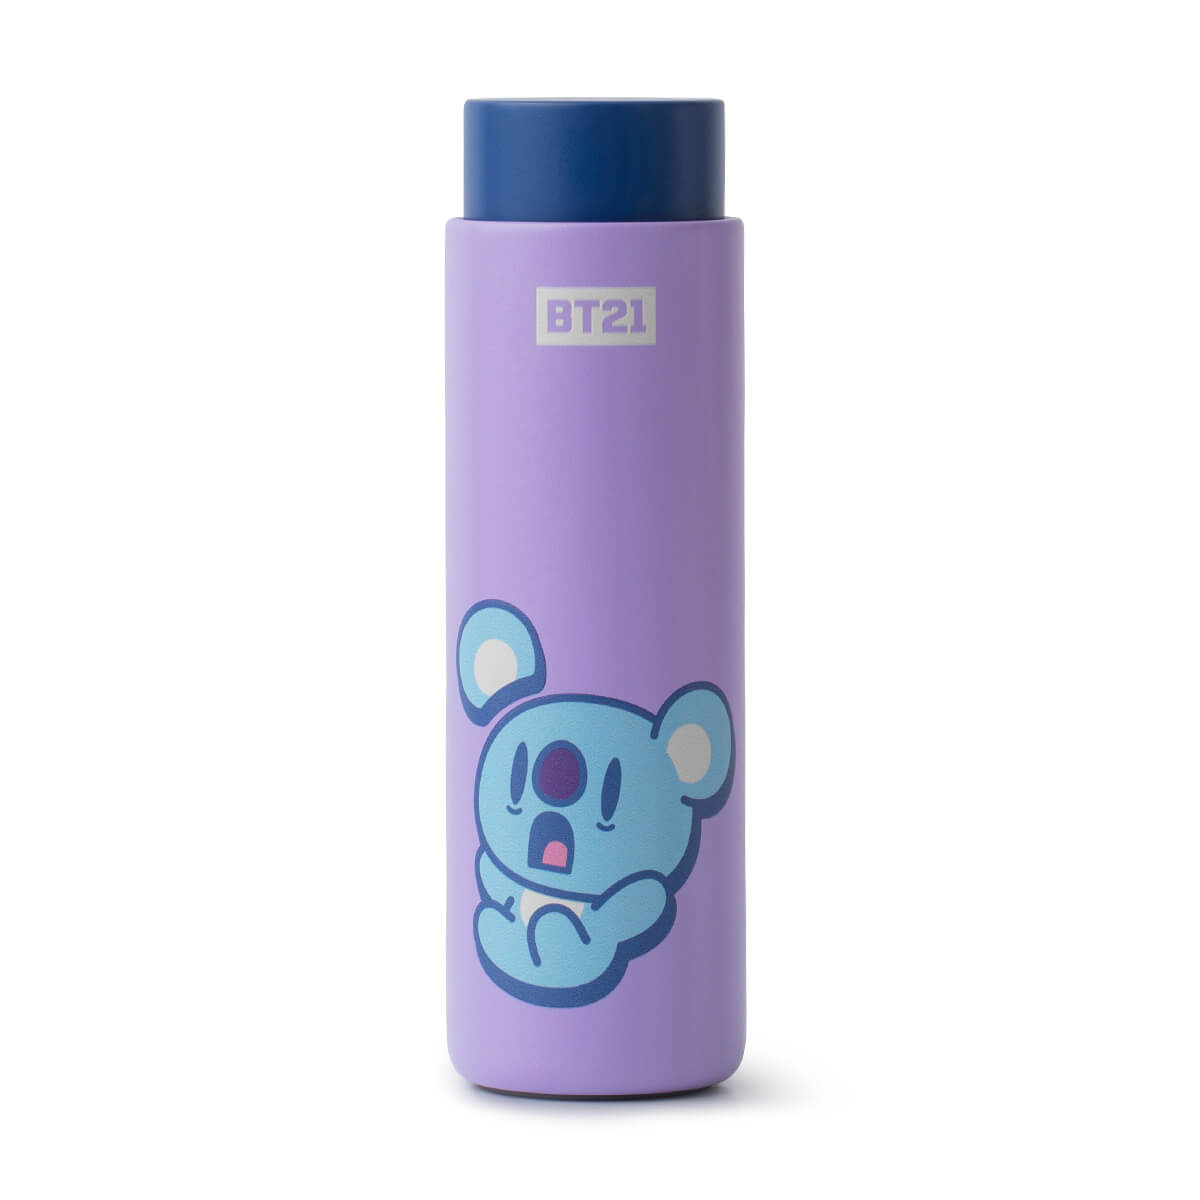 BT21 KOYA Lock & Lock Slim Tumbler + Bag Set